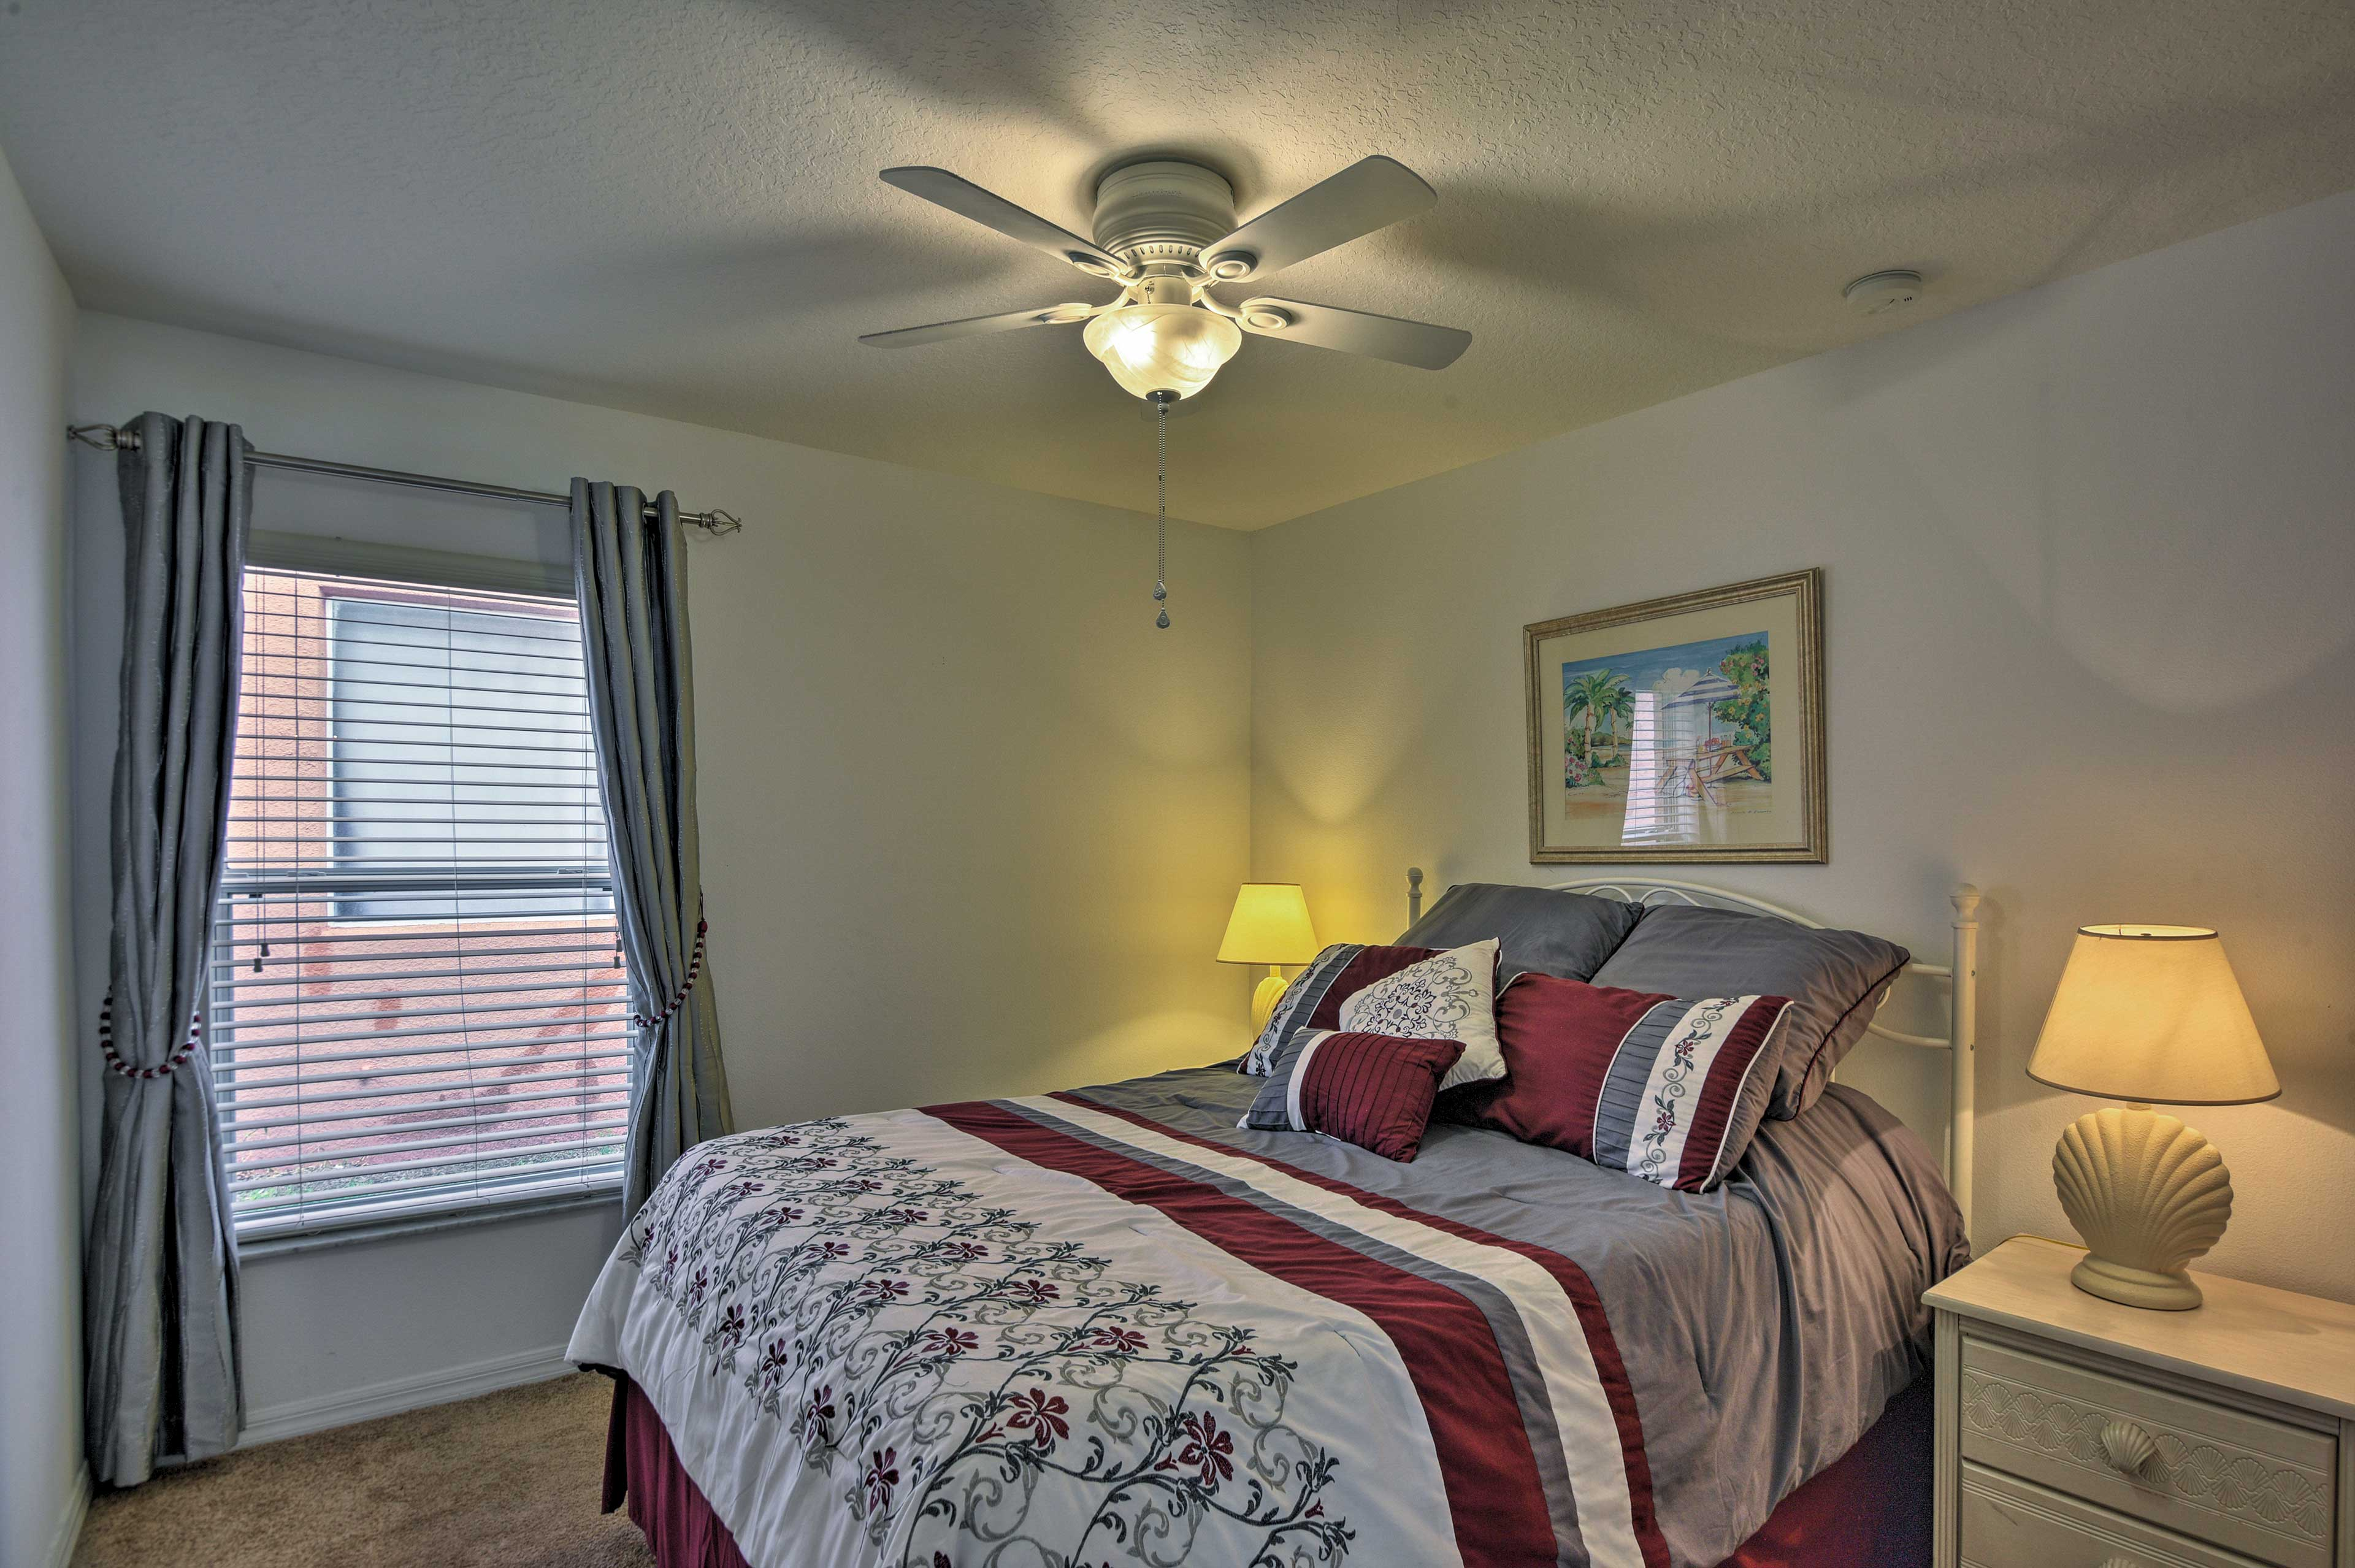 Dive under the covers of the queen bed in the second bedroom.